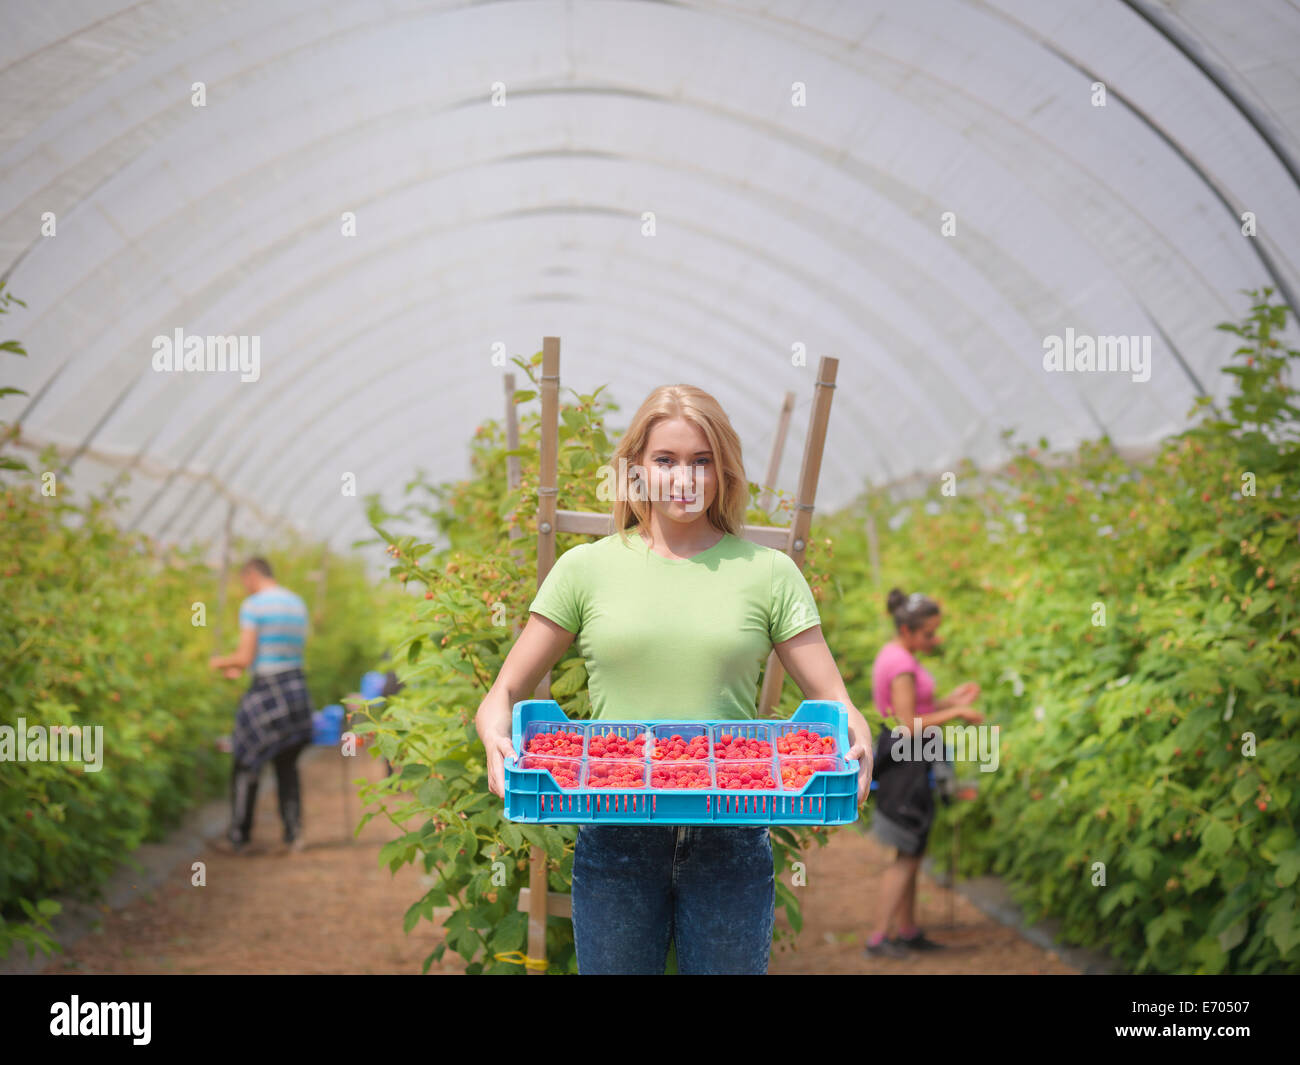 Portrait of worker with tray of raspberries on fruit farm - Stock Image